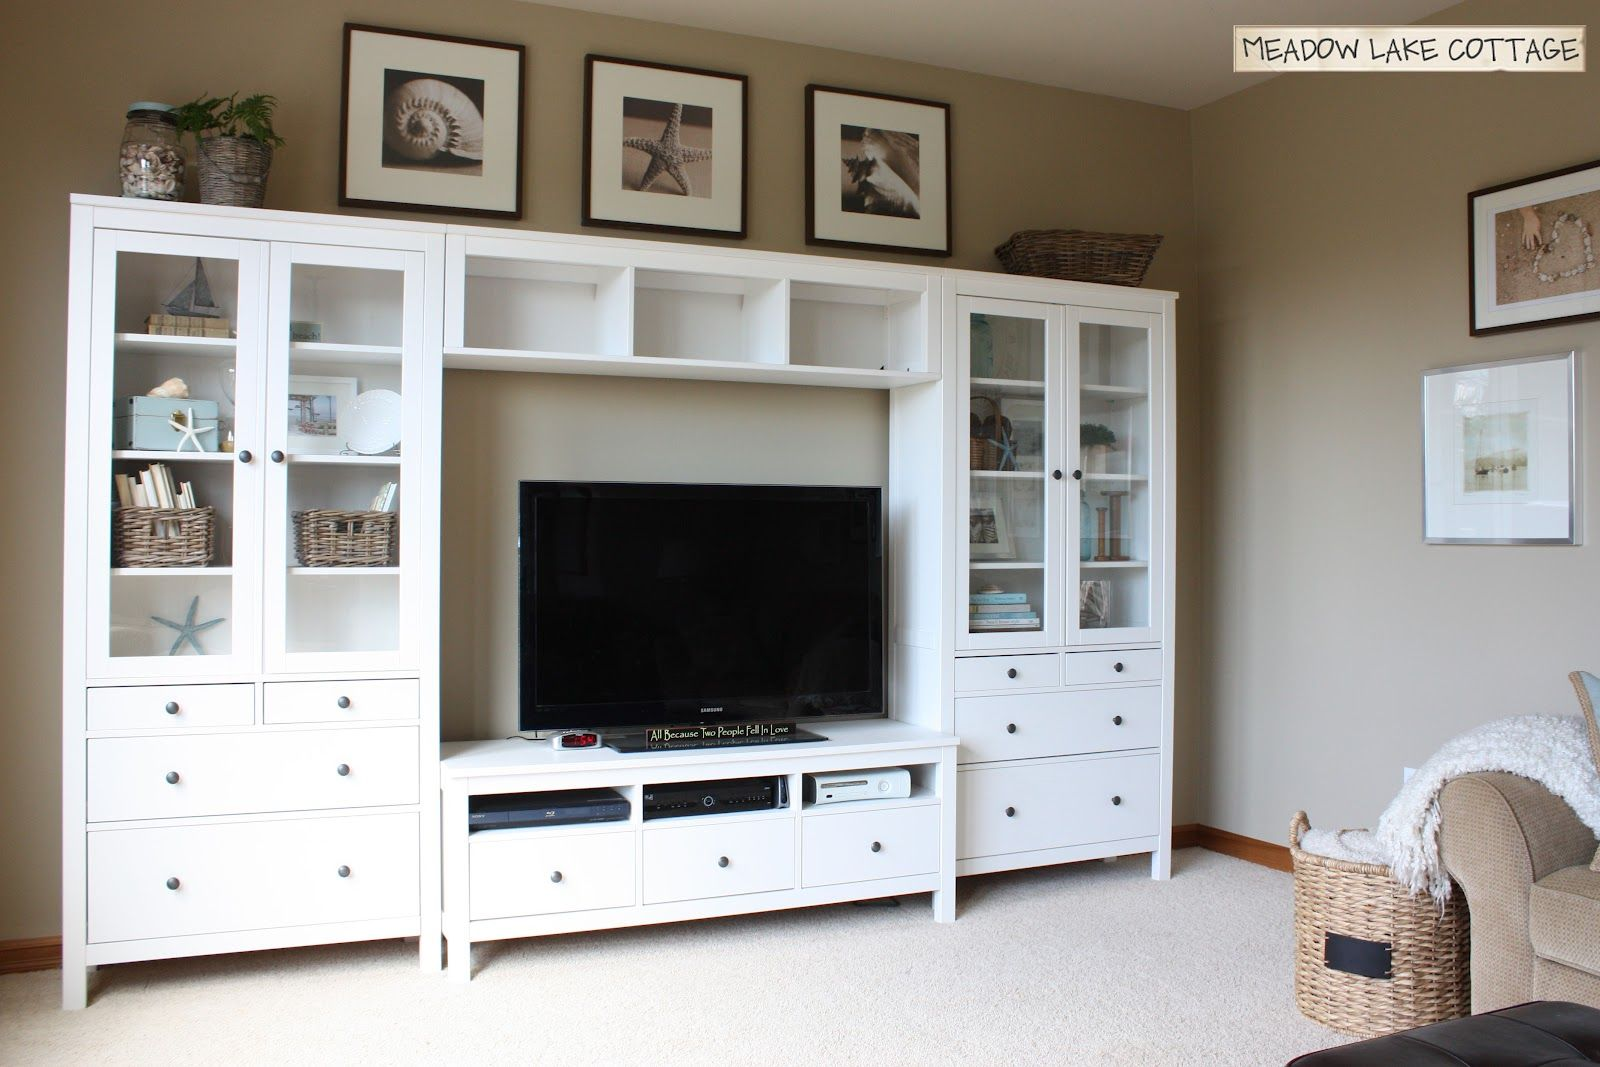 hemnes entertainment center hemnes tv stands and budgeting. Black Bedroom Furniture Sets. Home Design Ideas